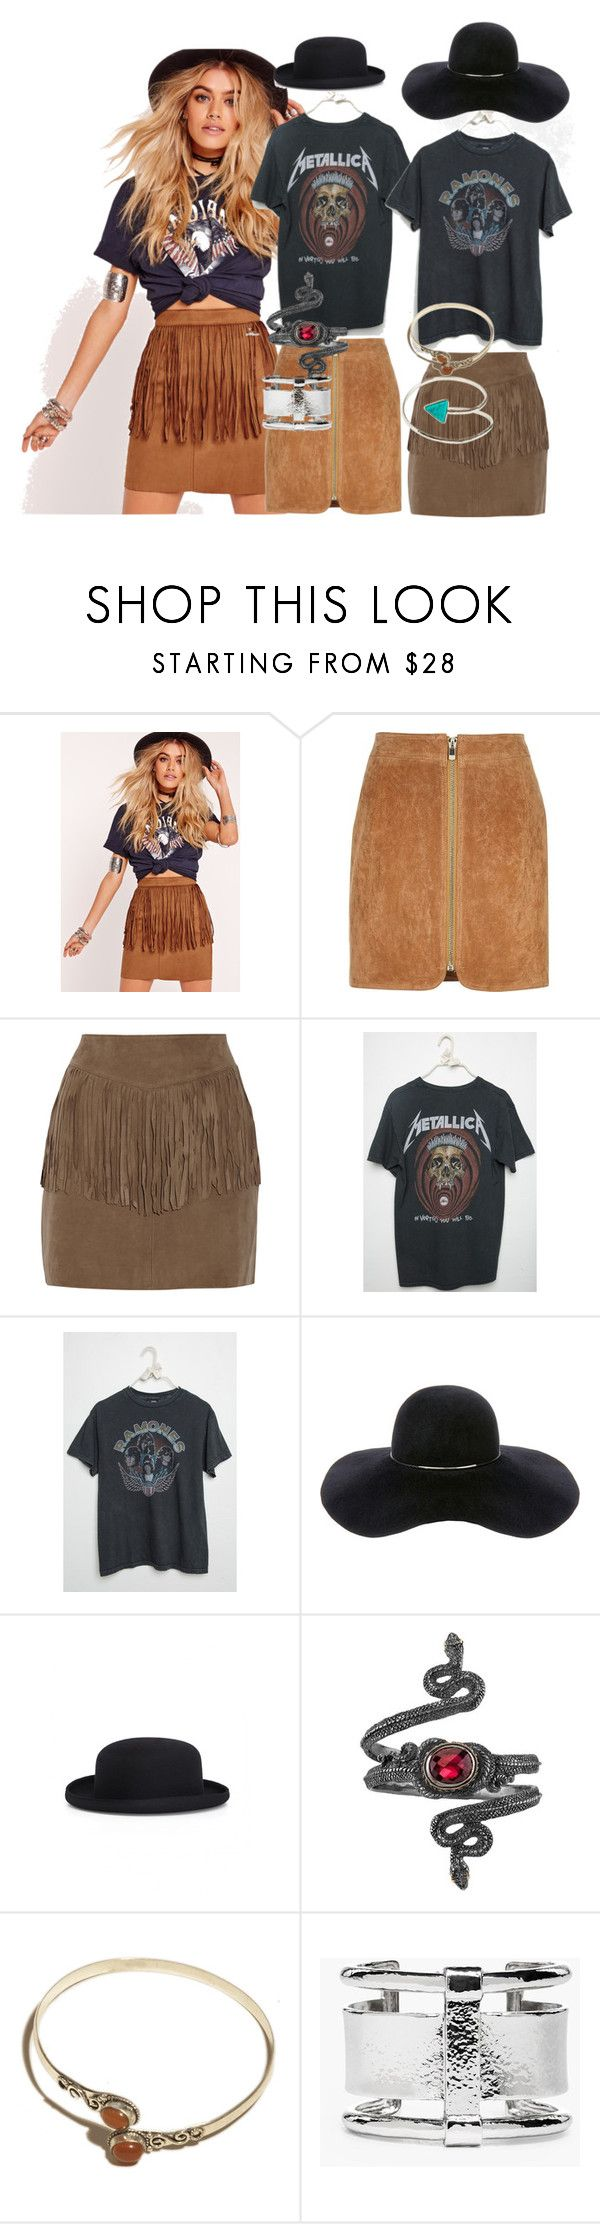 """Voodoo Fest"" by chelsofly on Polyvore featuring Missguided, River Island, W118 by Walter Baker, Brandy Melville, Eugenia Kim, Comme des Garçons, Michael Barin, Urbiana, Chico's and Sol Sana"